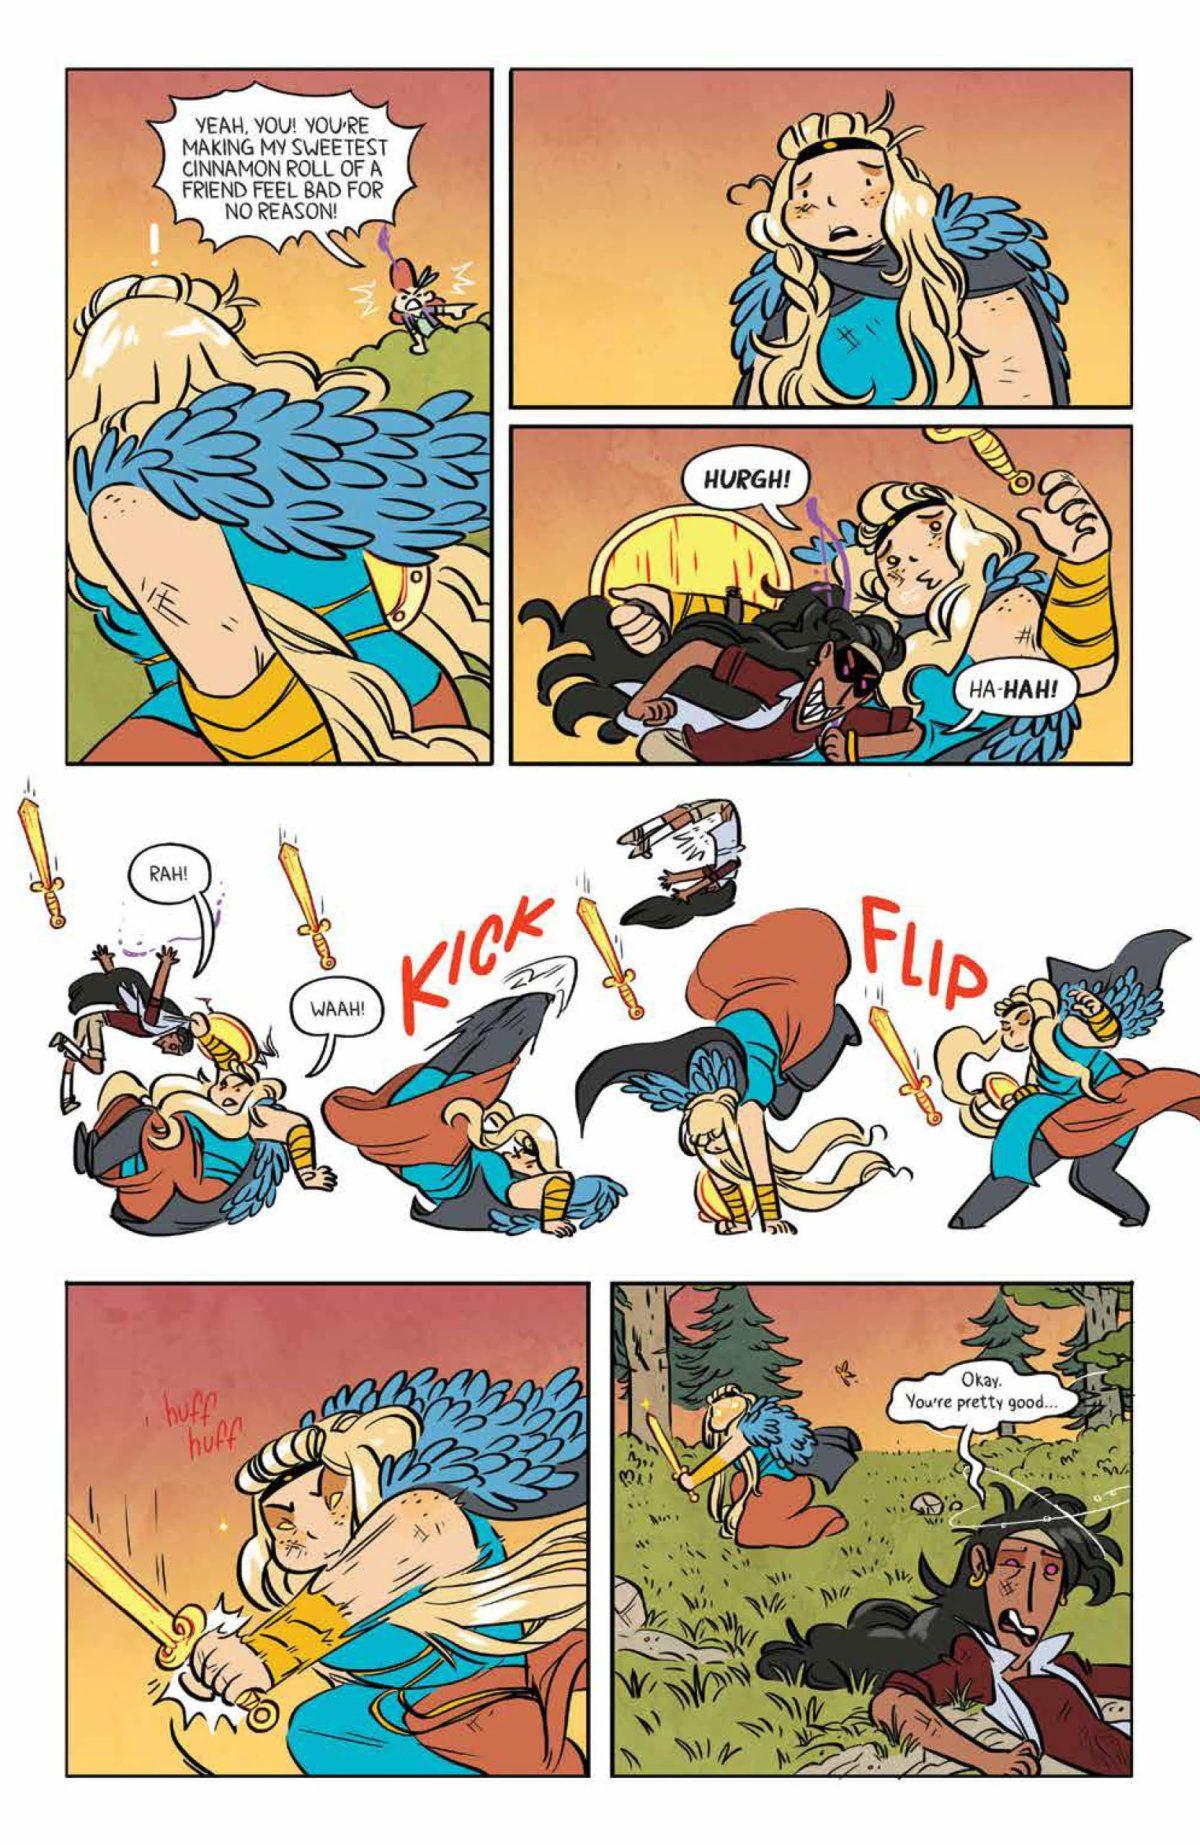 Freya gets yelled at by April on page 6 of Lumberjanes #68